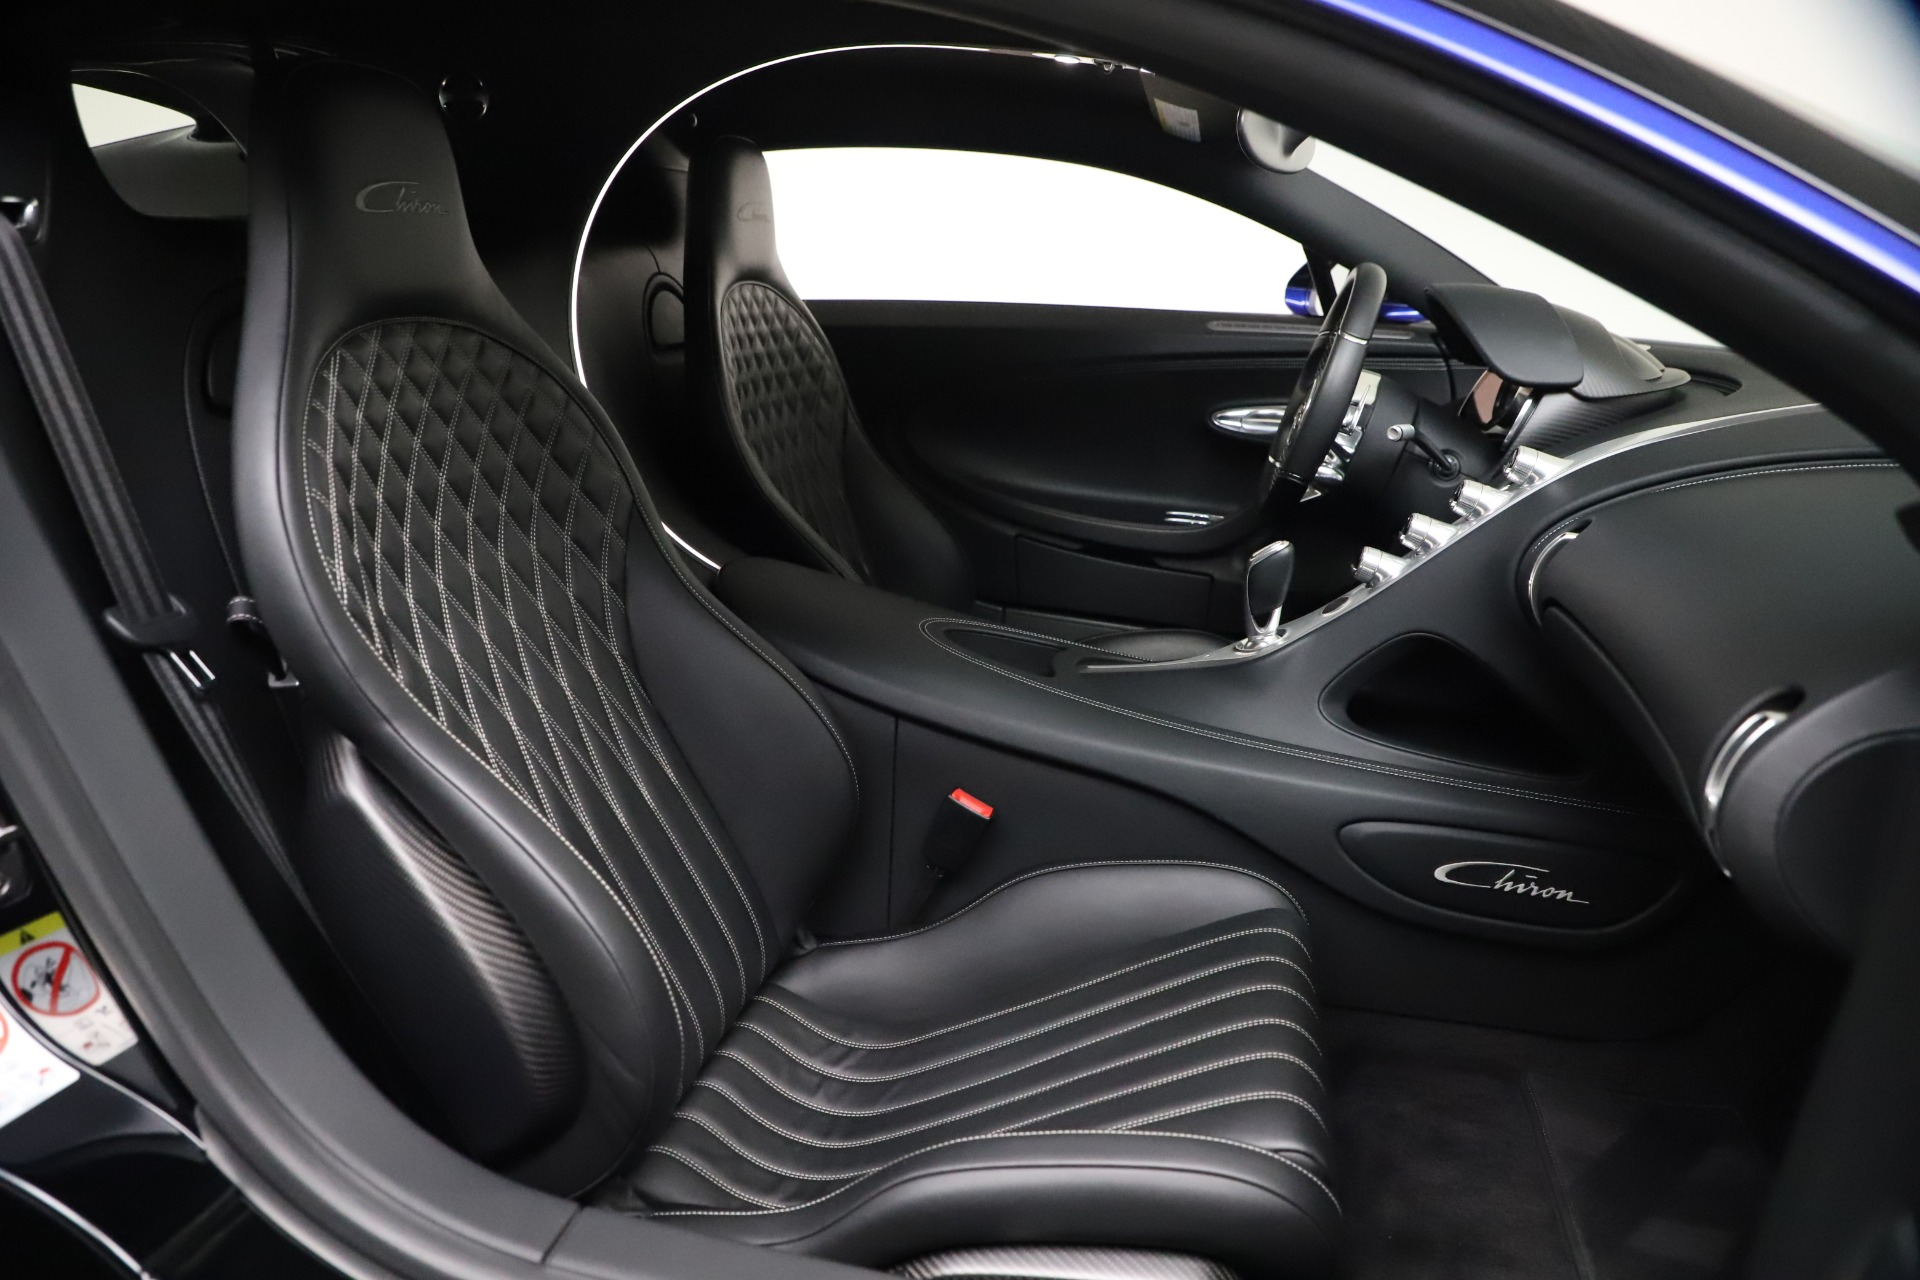 Pre-Owned 2018 Bugatti Chiron For Sale () | Miller Motorcars Stock #8024